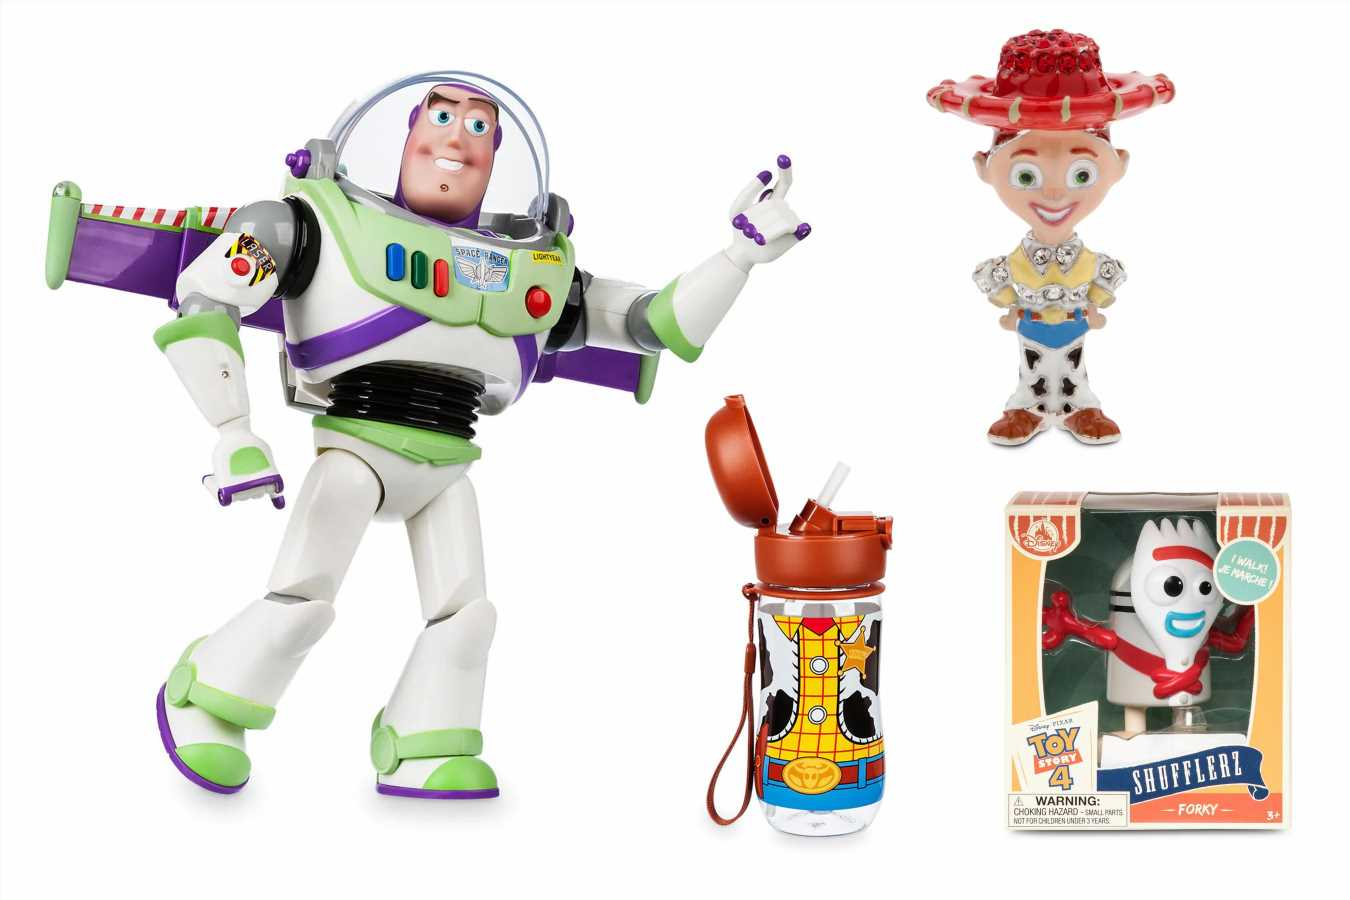 The coolest Toy Story toys and accessories you can buy right ow